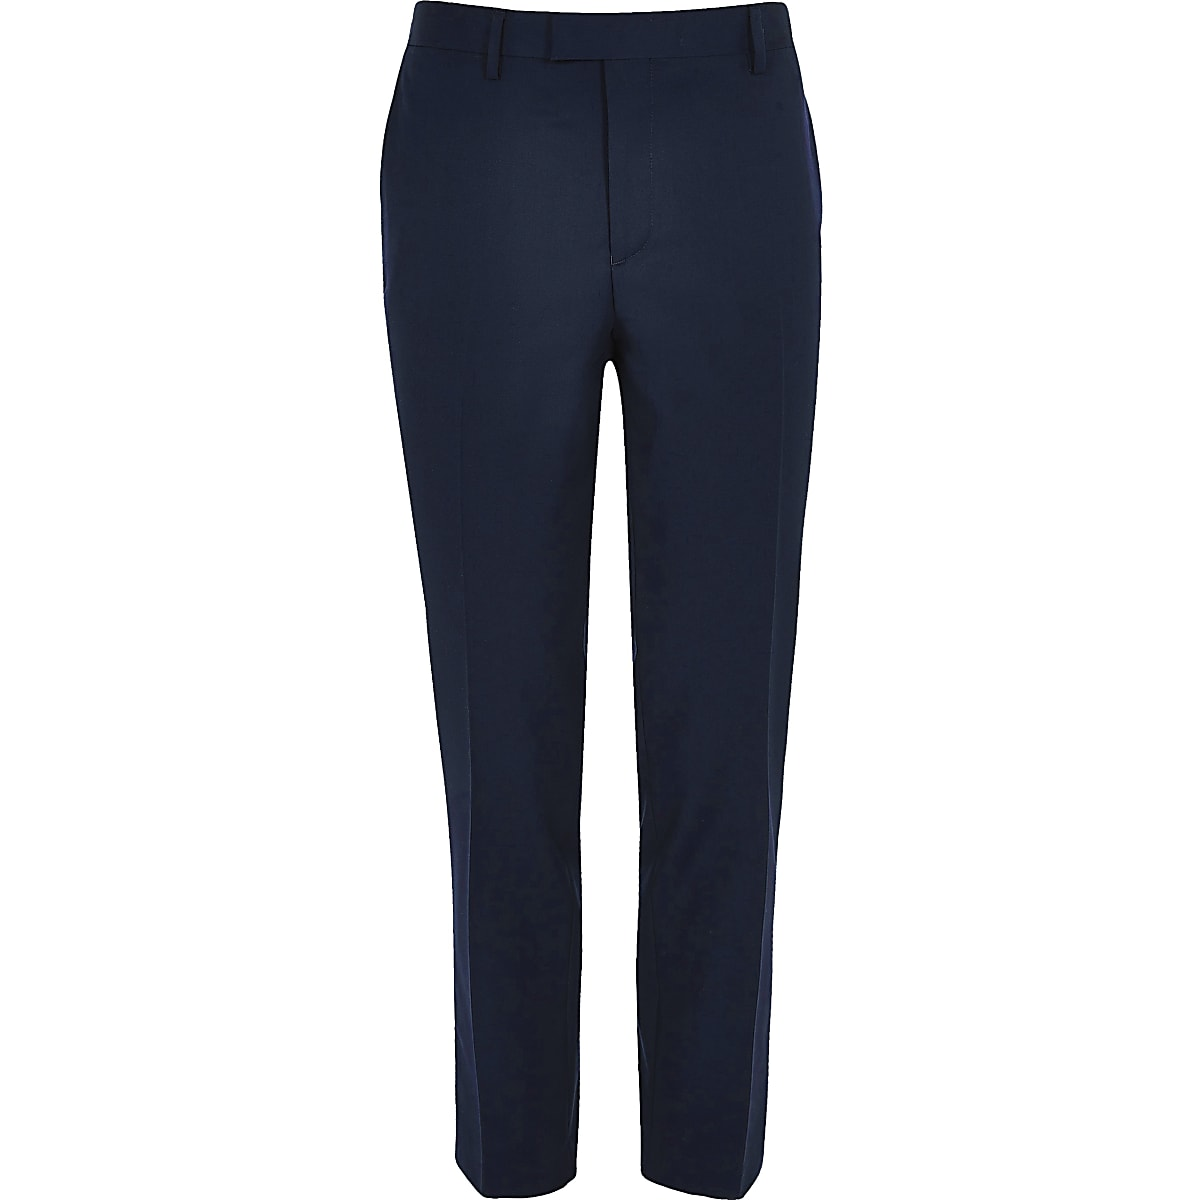 Navy smart skinny suit trousers